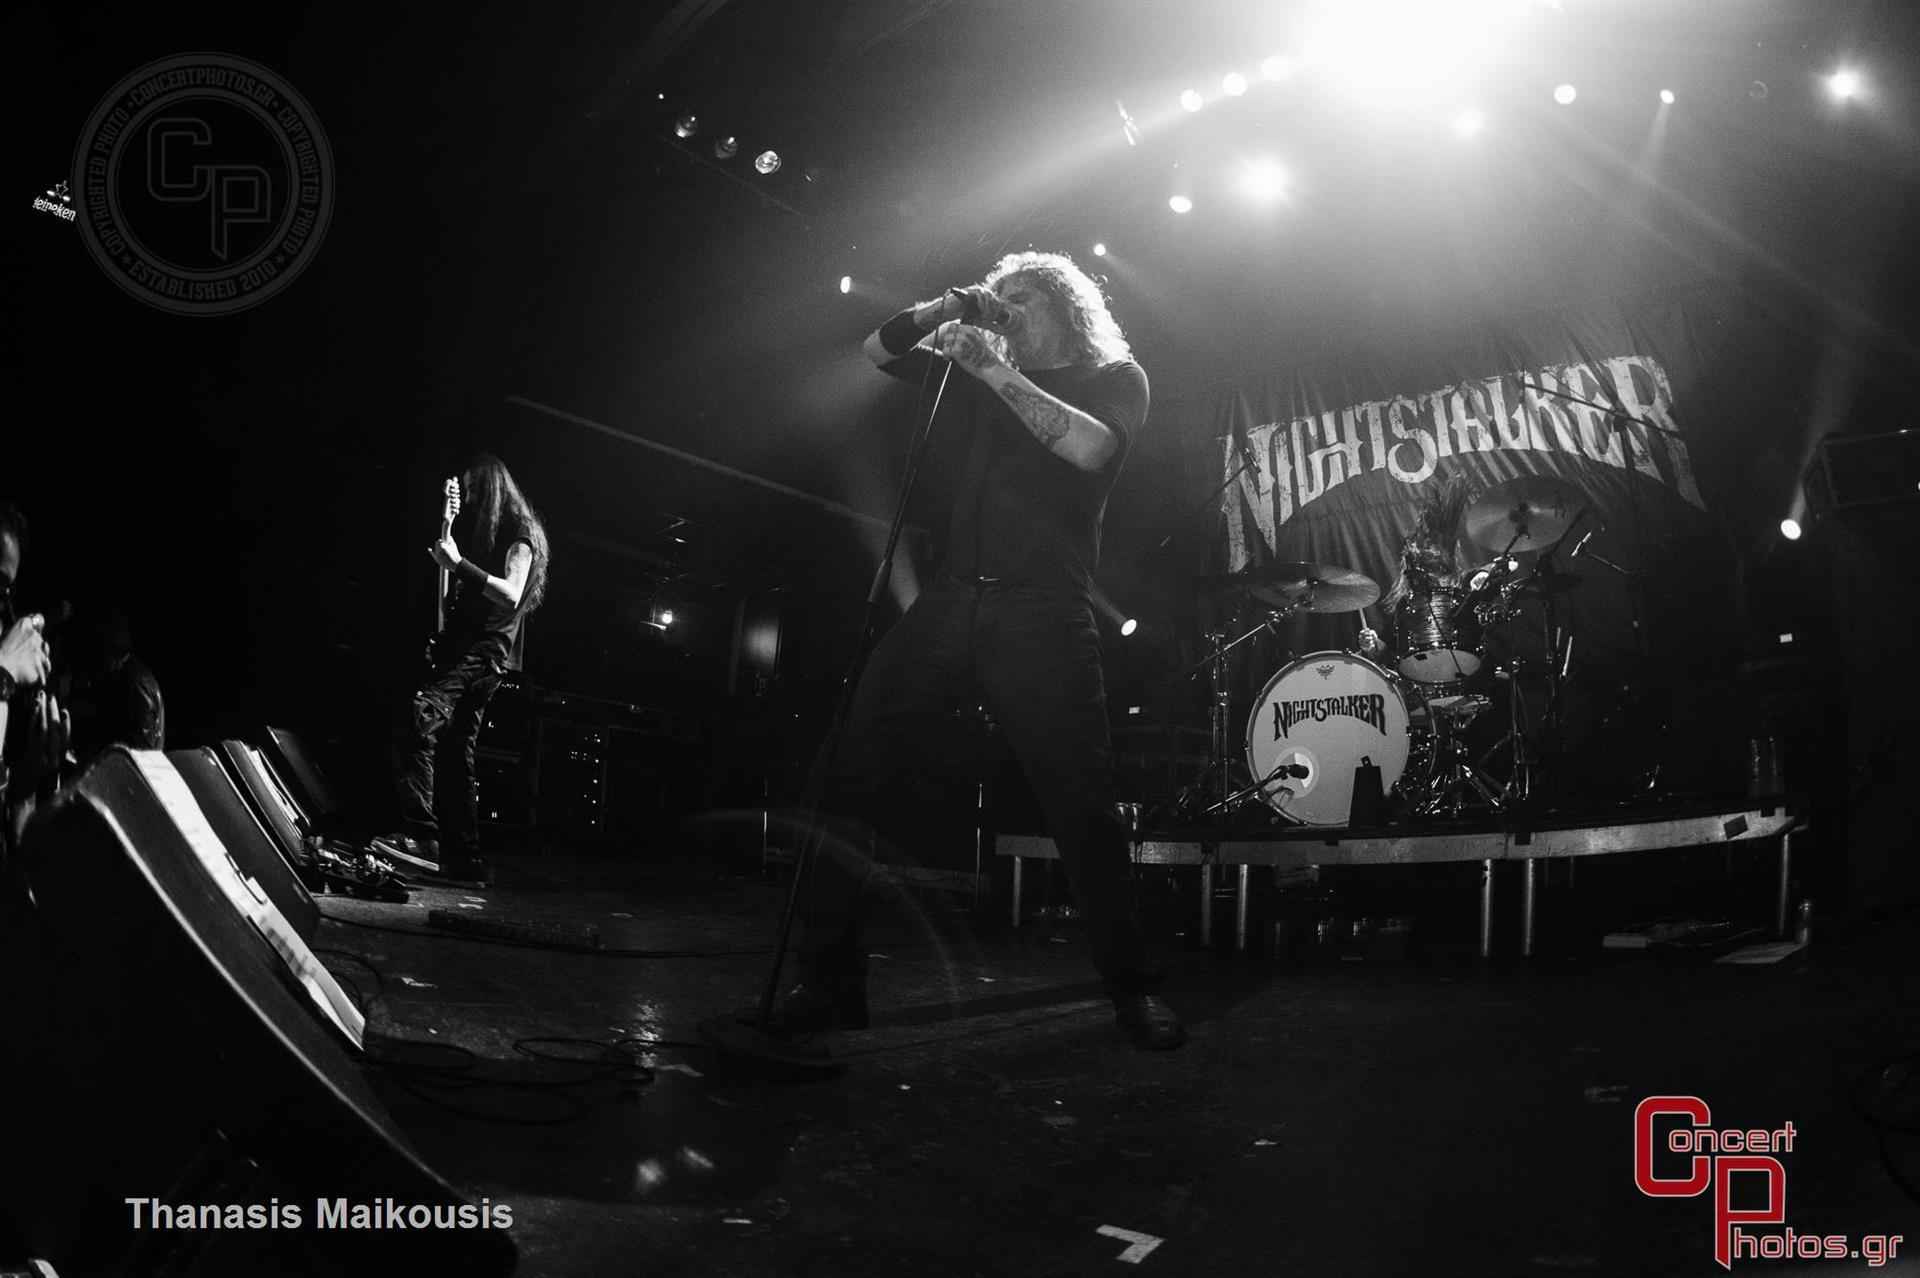 Nightstalker Three Holy Strangers-Nightstalker-Gagarin-April-2015 photographer: Thanasis Maikousis - ConcertPhotos - 20150425_2310_16